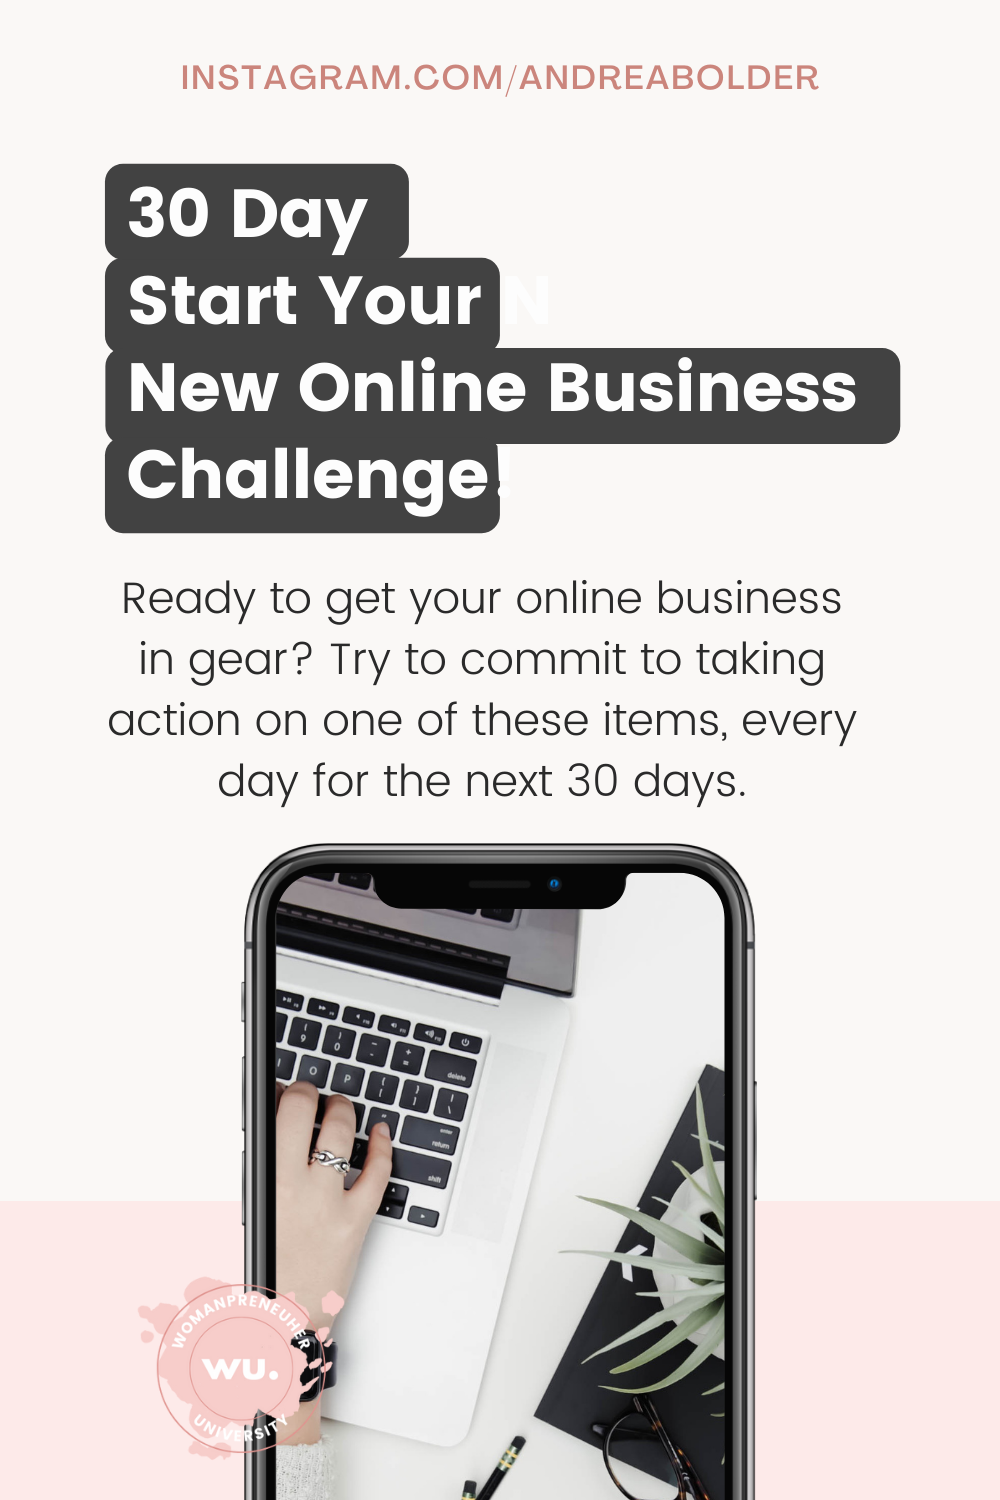 30 Day Start Your New Online Business Challenge!